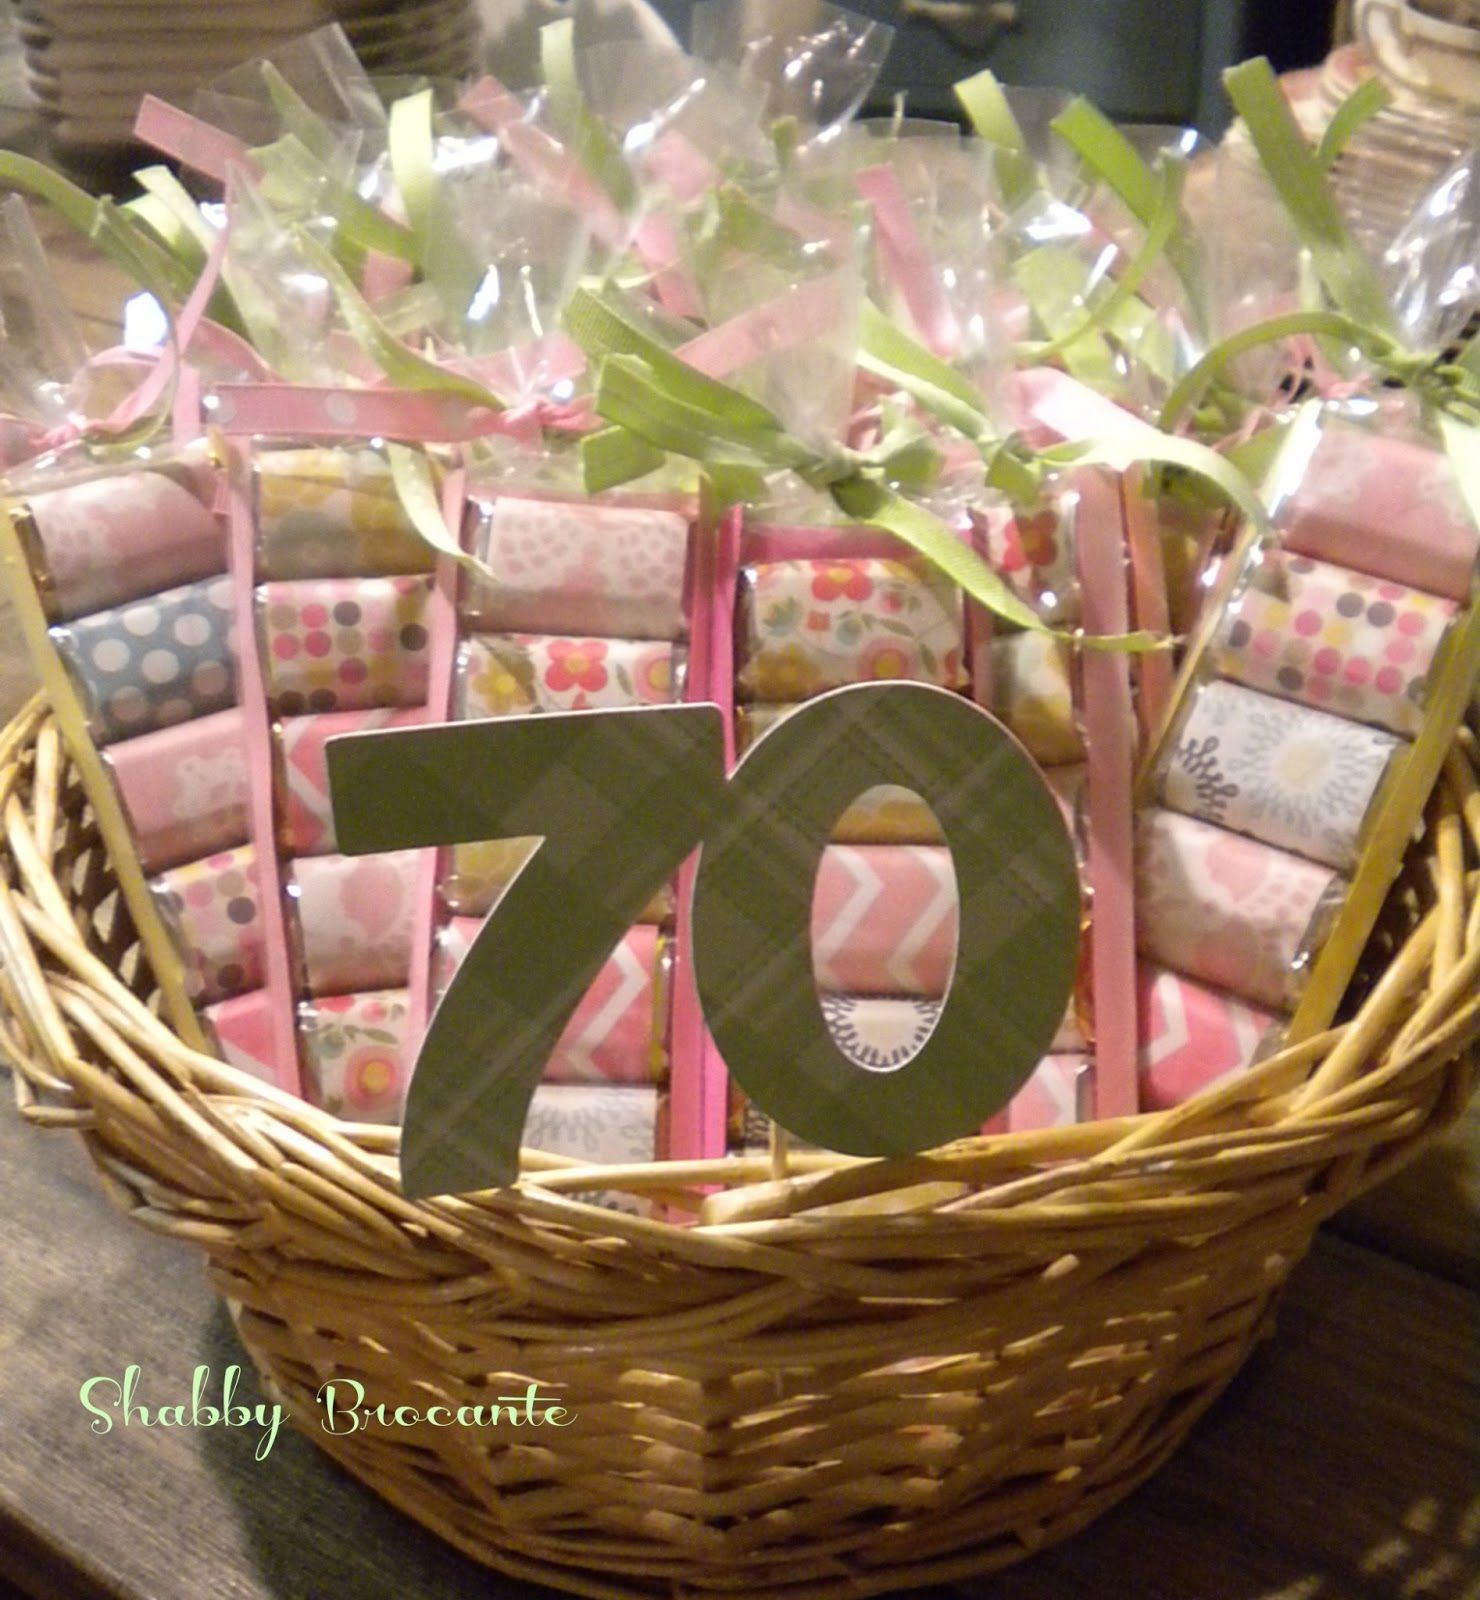 Shabby Brocante Adult Party Favors